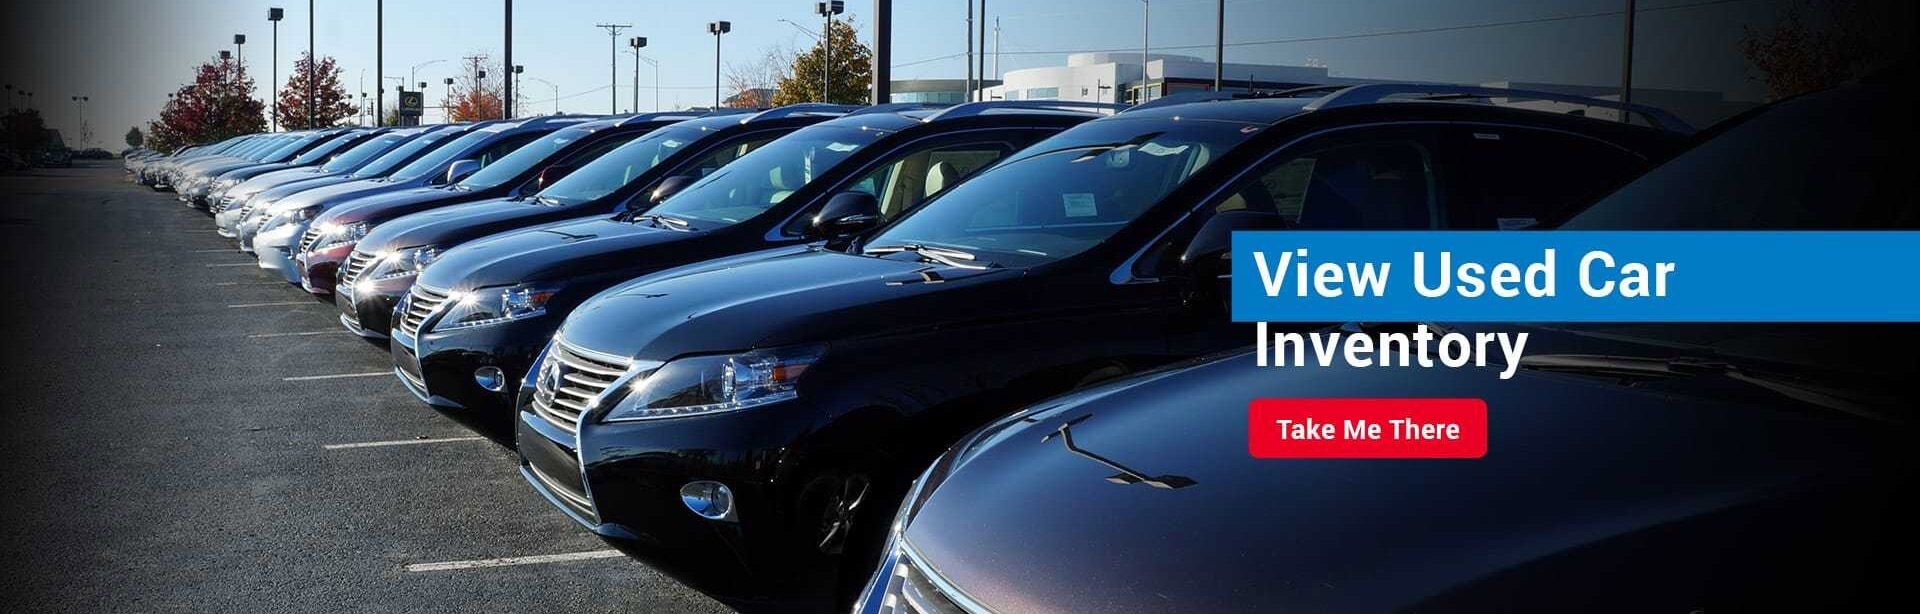 Used Car Dealerships In Winchester Va >> Chevrolet, Chrysler, Dodge, Honda, Hyundai, Jeep, RAM, Toyota Dealership Martinsburg, WV and ...